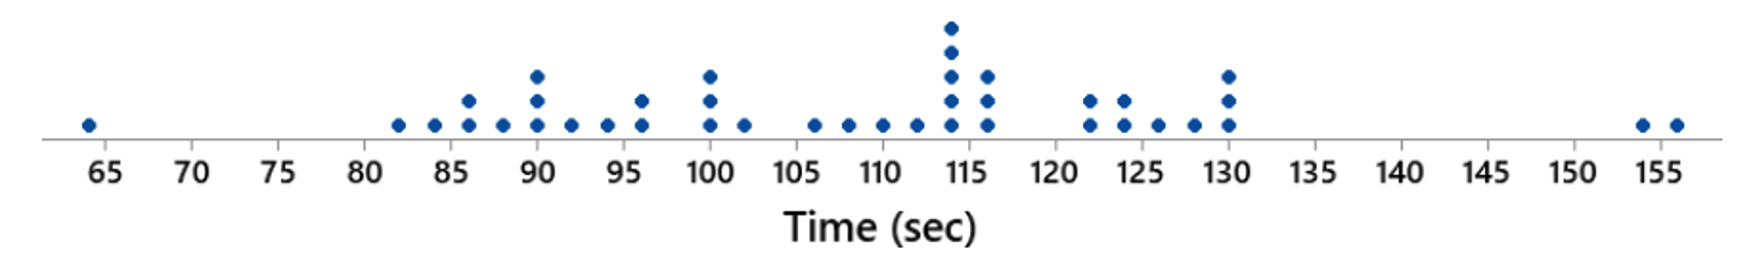 The graph below shows the length of time it took singers to sing the national anthem at the Super Bowl. This data set has a mean of about 108 seconds and a standard deviation of about 19 seconds.